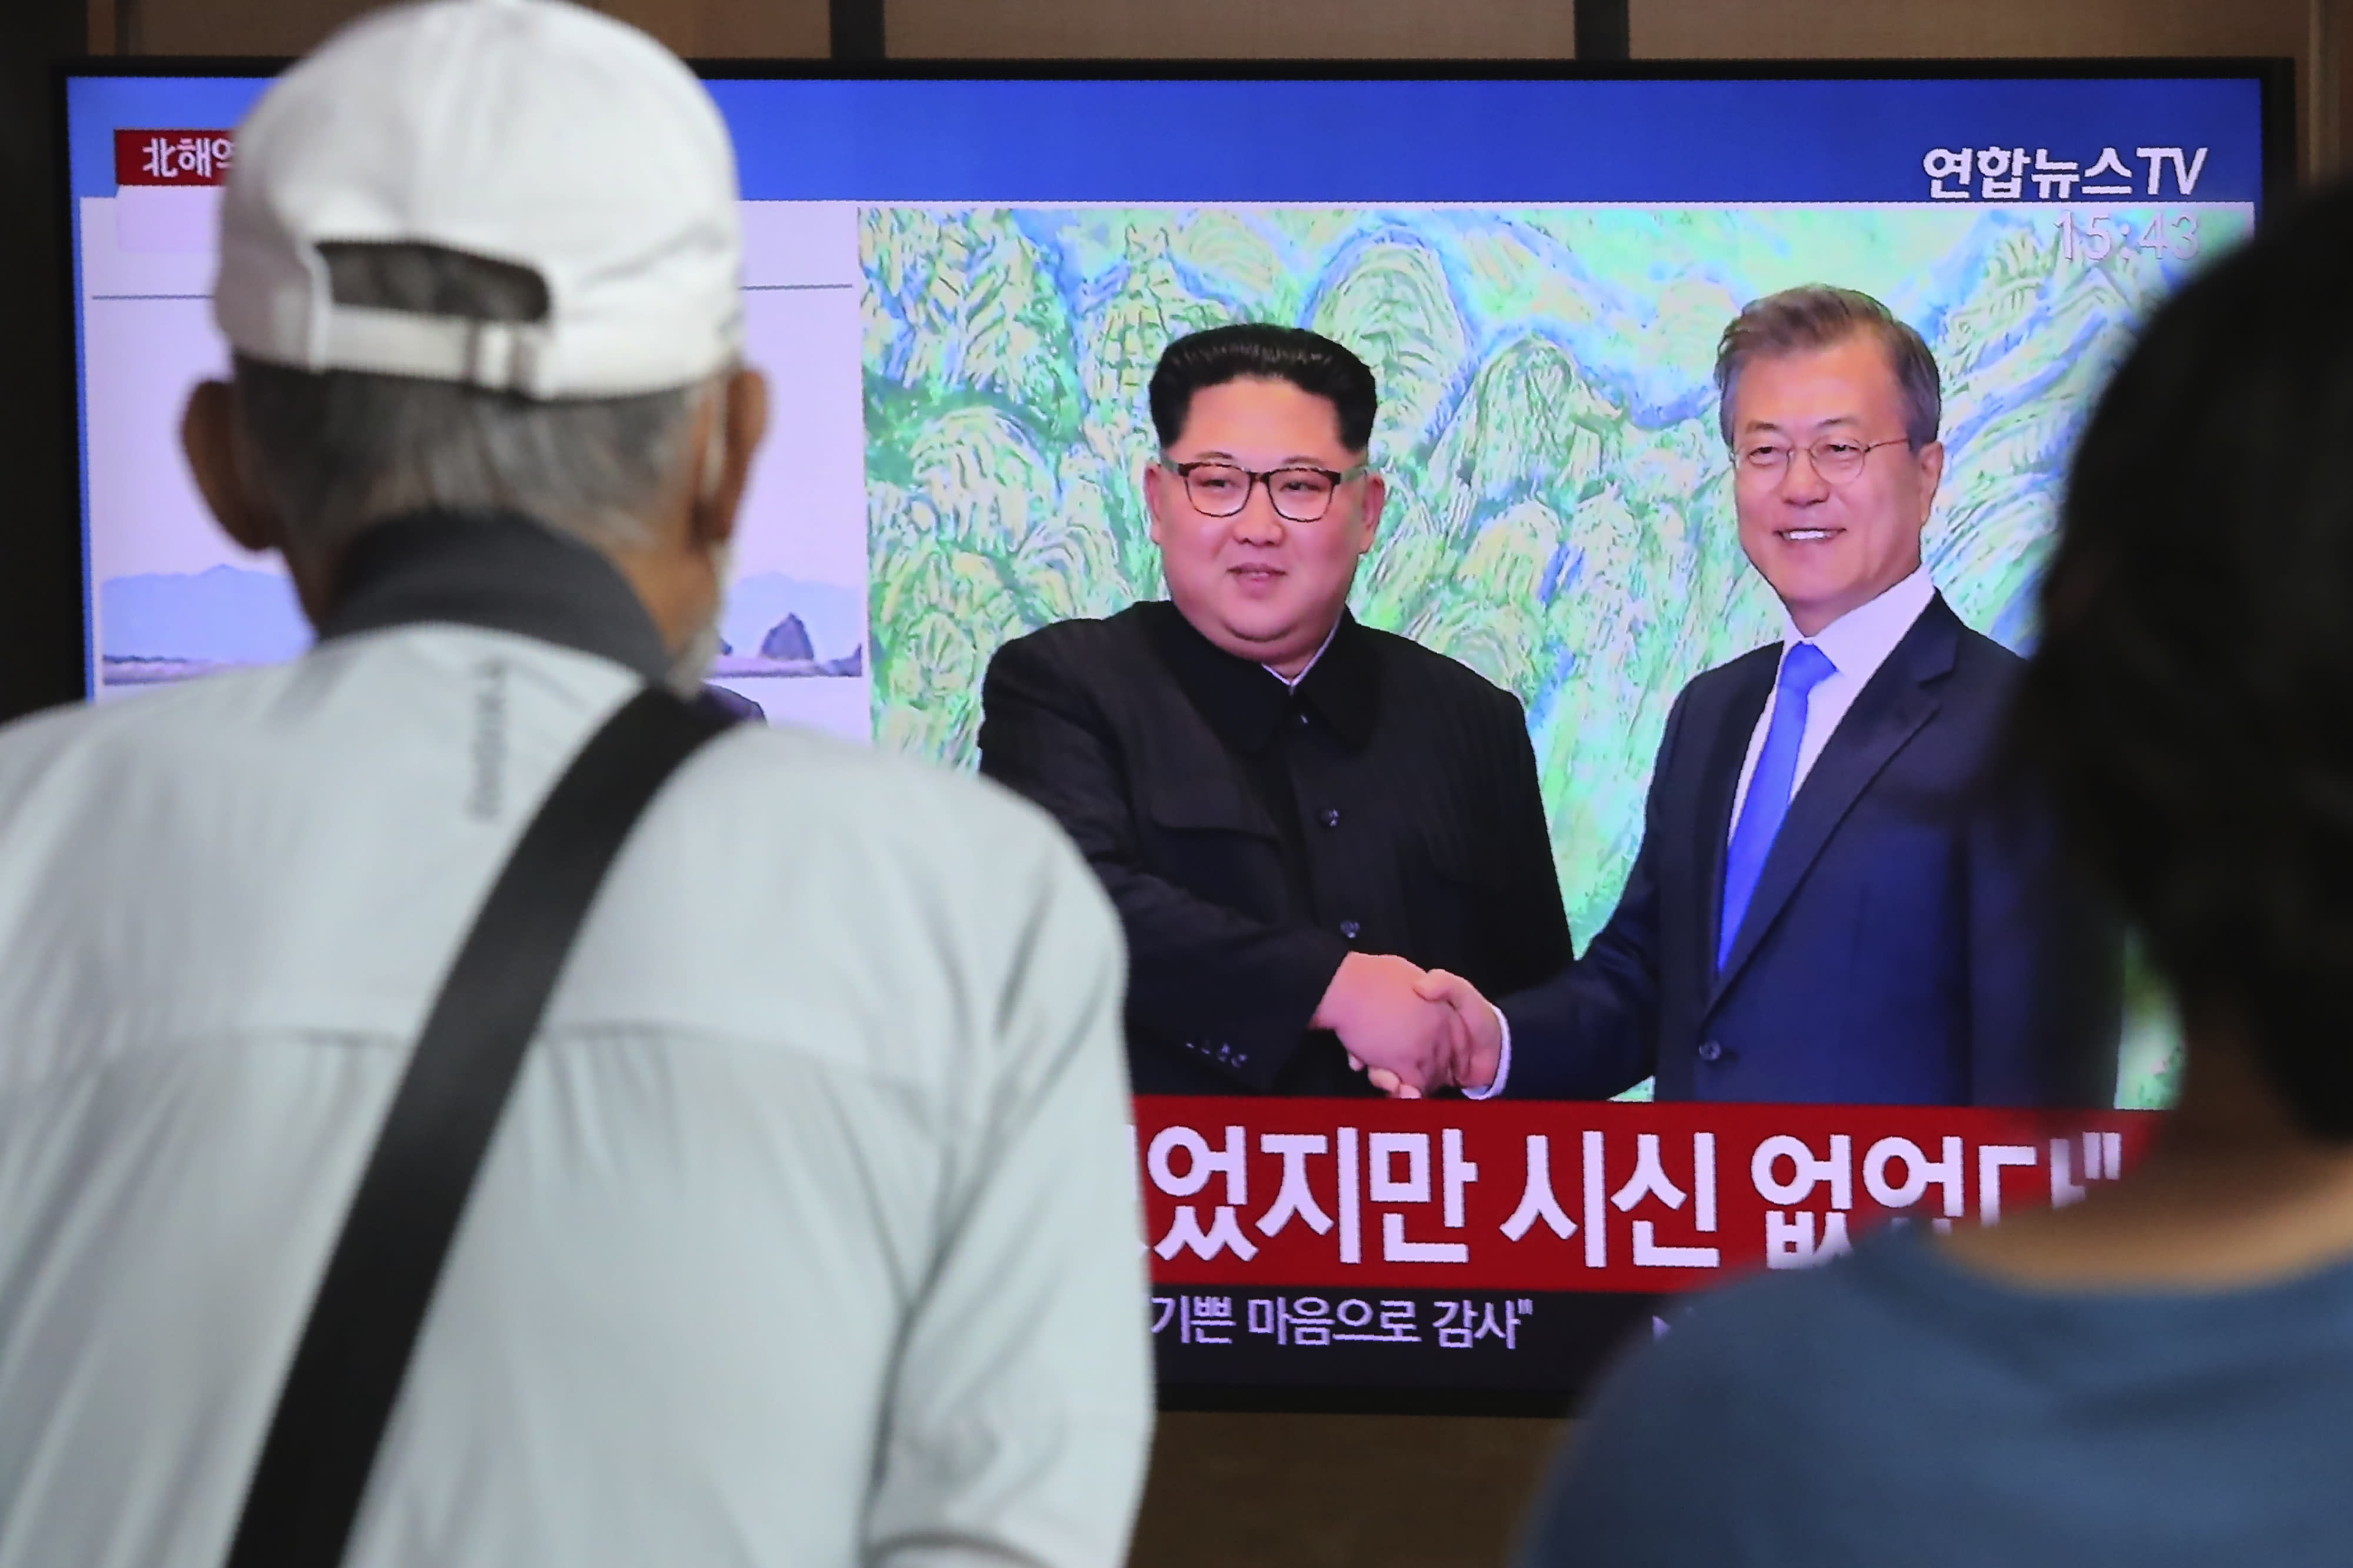 """People watch a TV showing a file image of North Korean leader Kim Jong Un, left, and South Korean President Moon Jae-in during a news program at the Seoul Railway Station in Seoul, South Korea, Friday, Sept. 25, 2020. North Korean leader Kim apologized Friday over the killing of a South Korea official near the rivals' disputed sea boundary, saying he's """"very sorry"""" about the incident he called unexpected and unfortunate, South Korean officials said. (AP Photo/Ahn Young-joon)"""